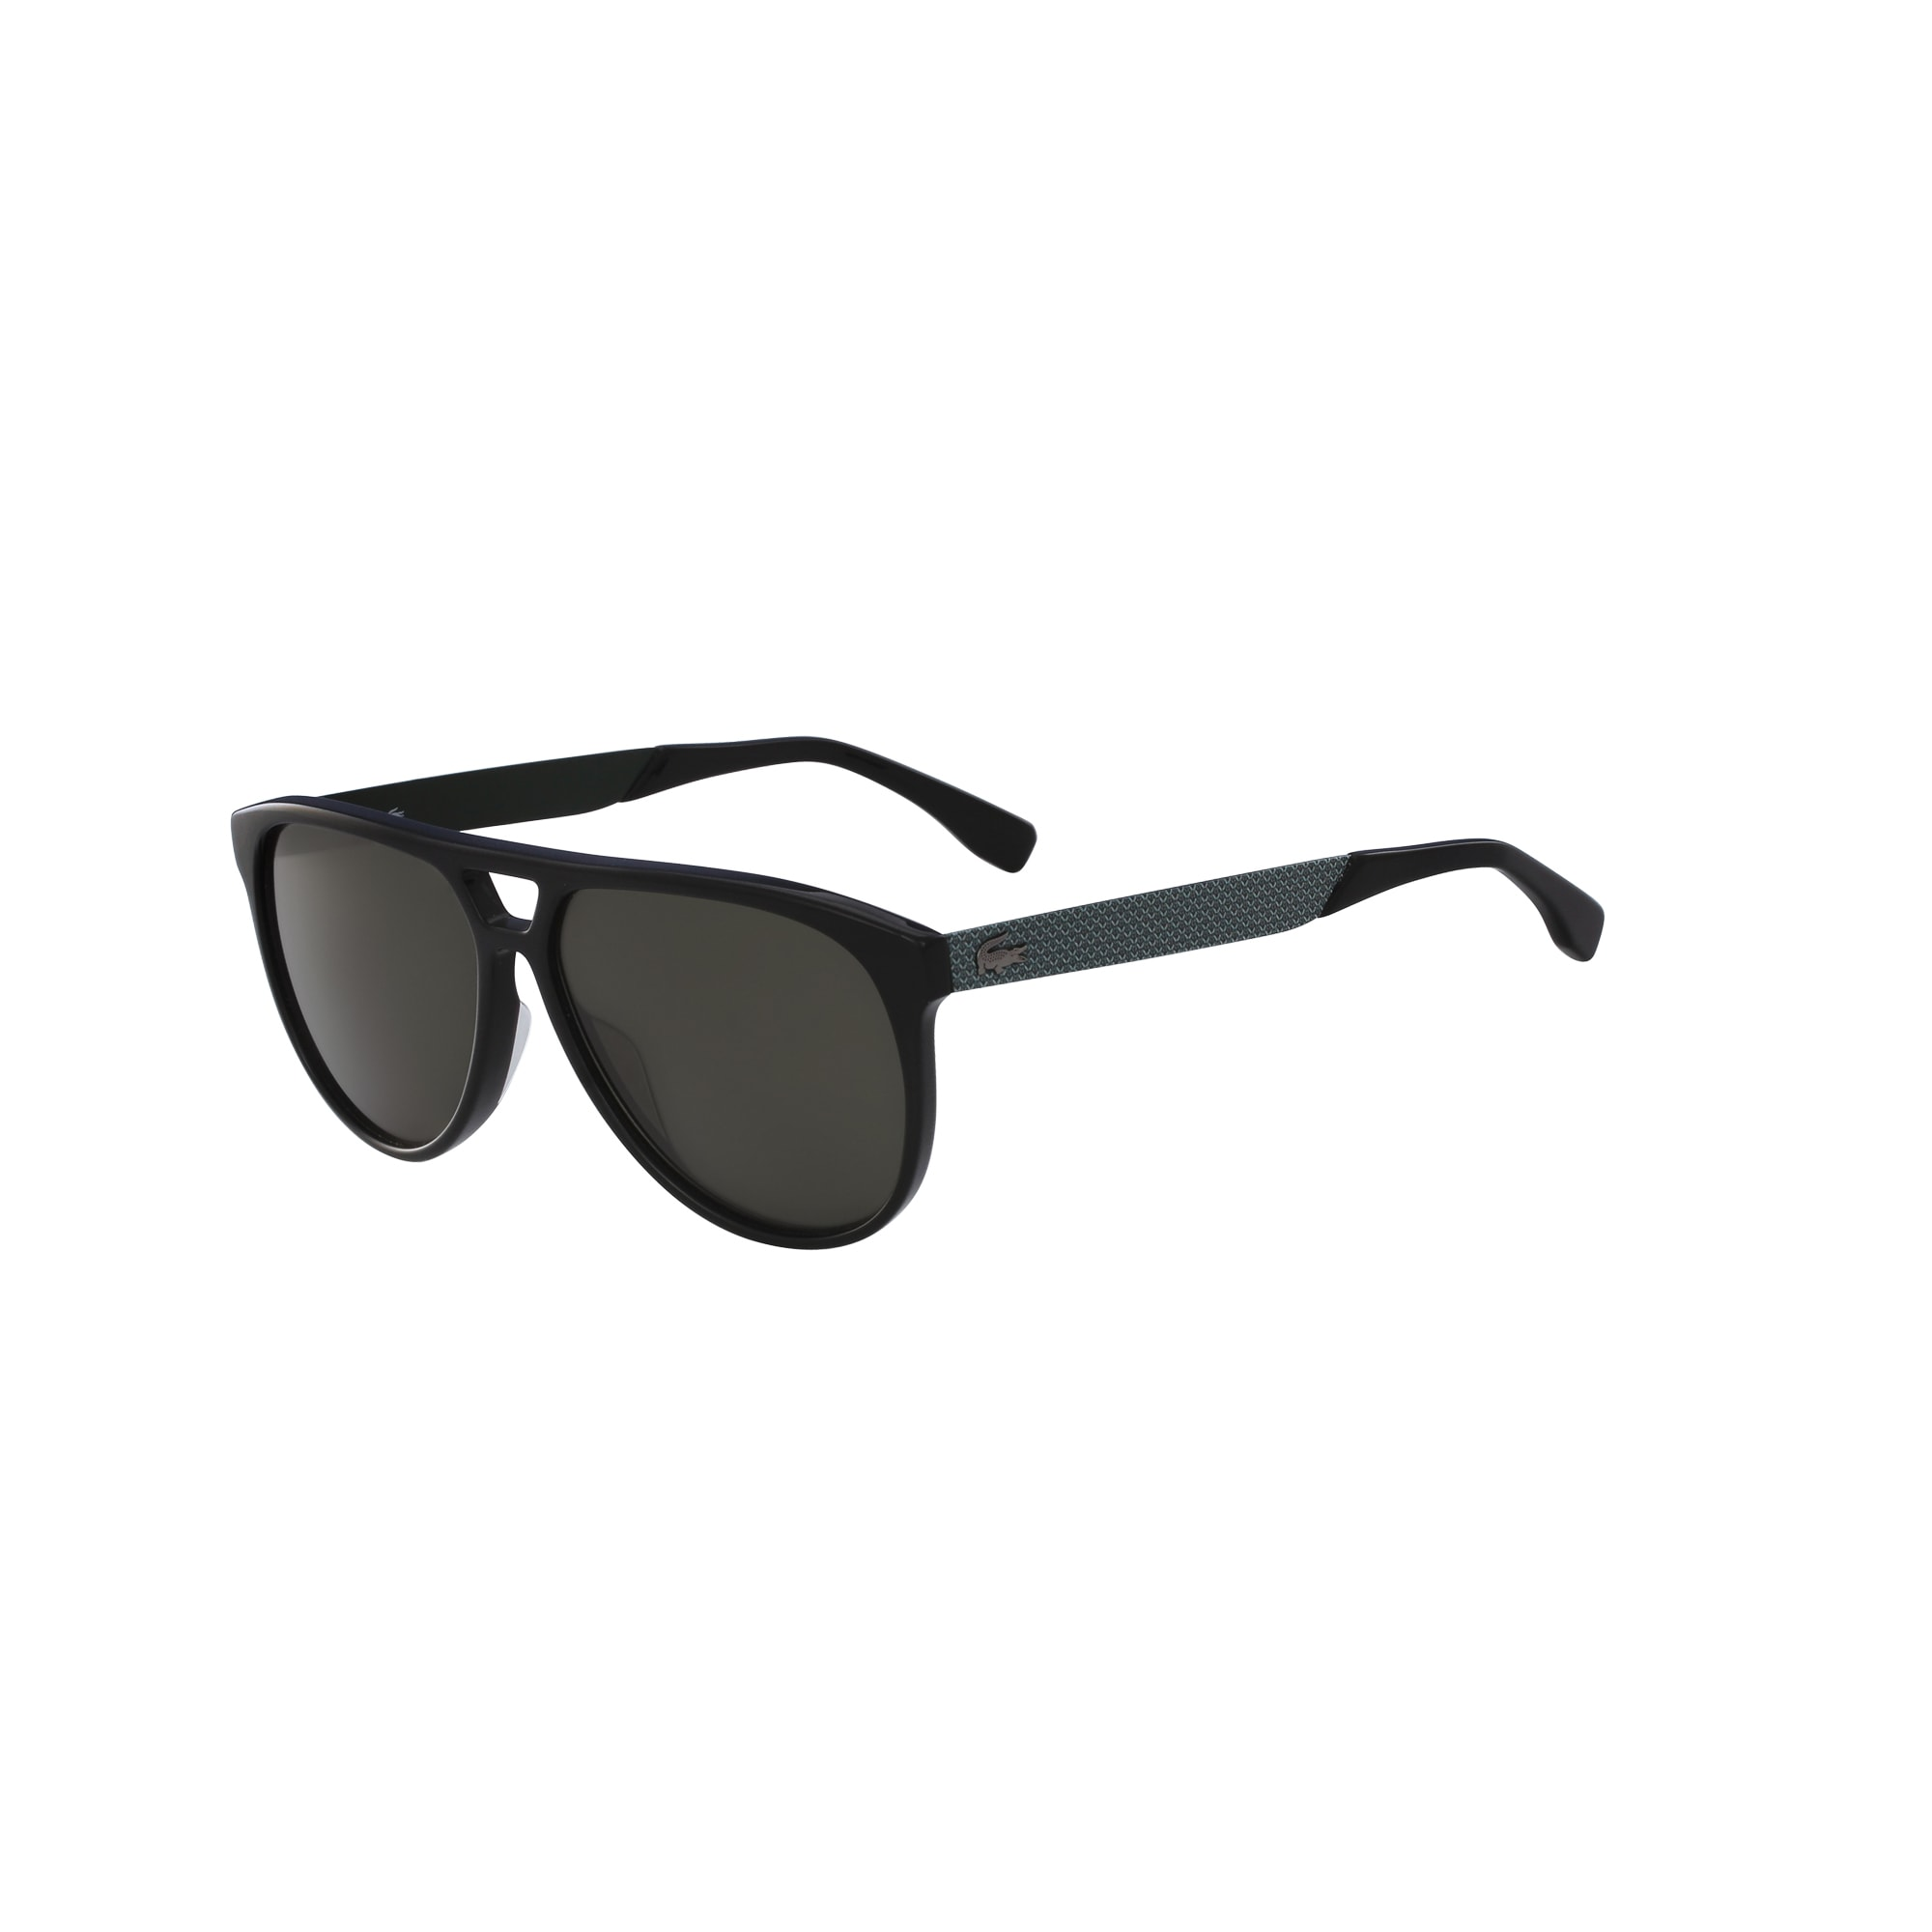 Men's Double Bridge Sunglasses